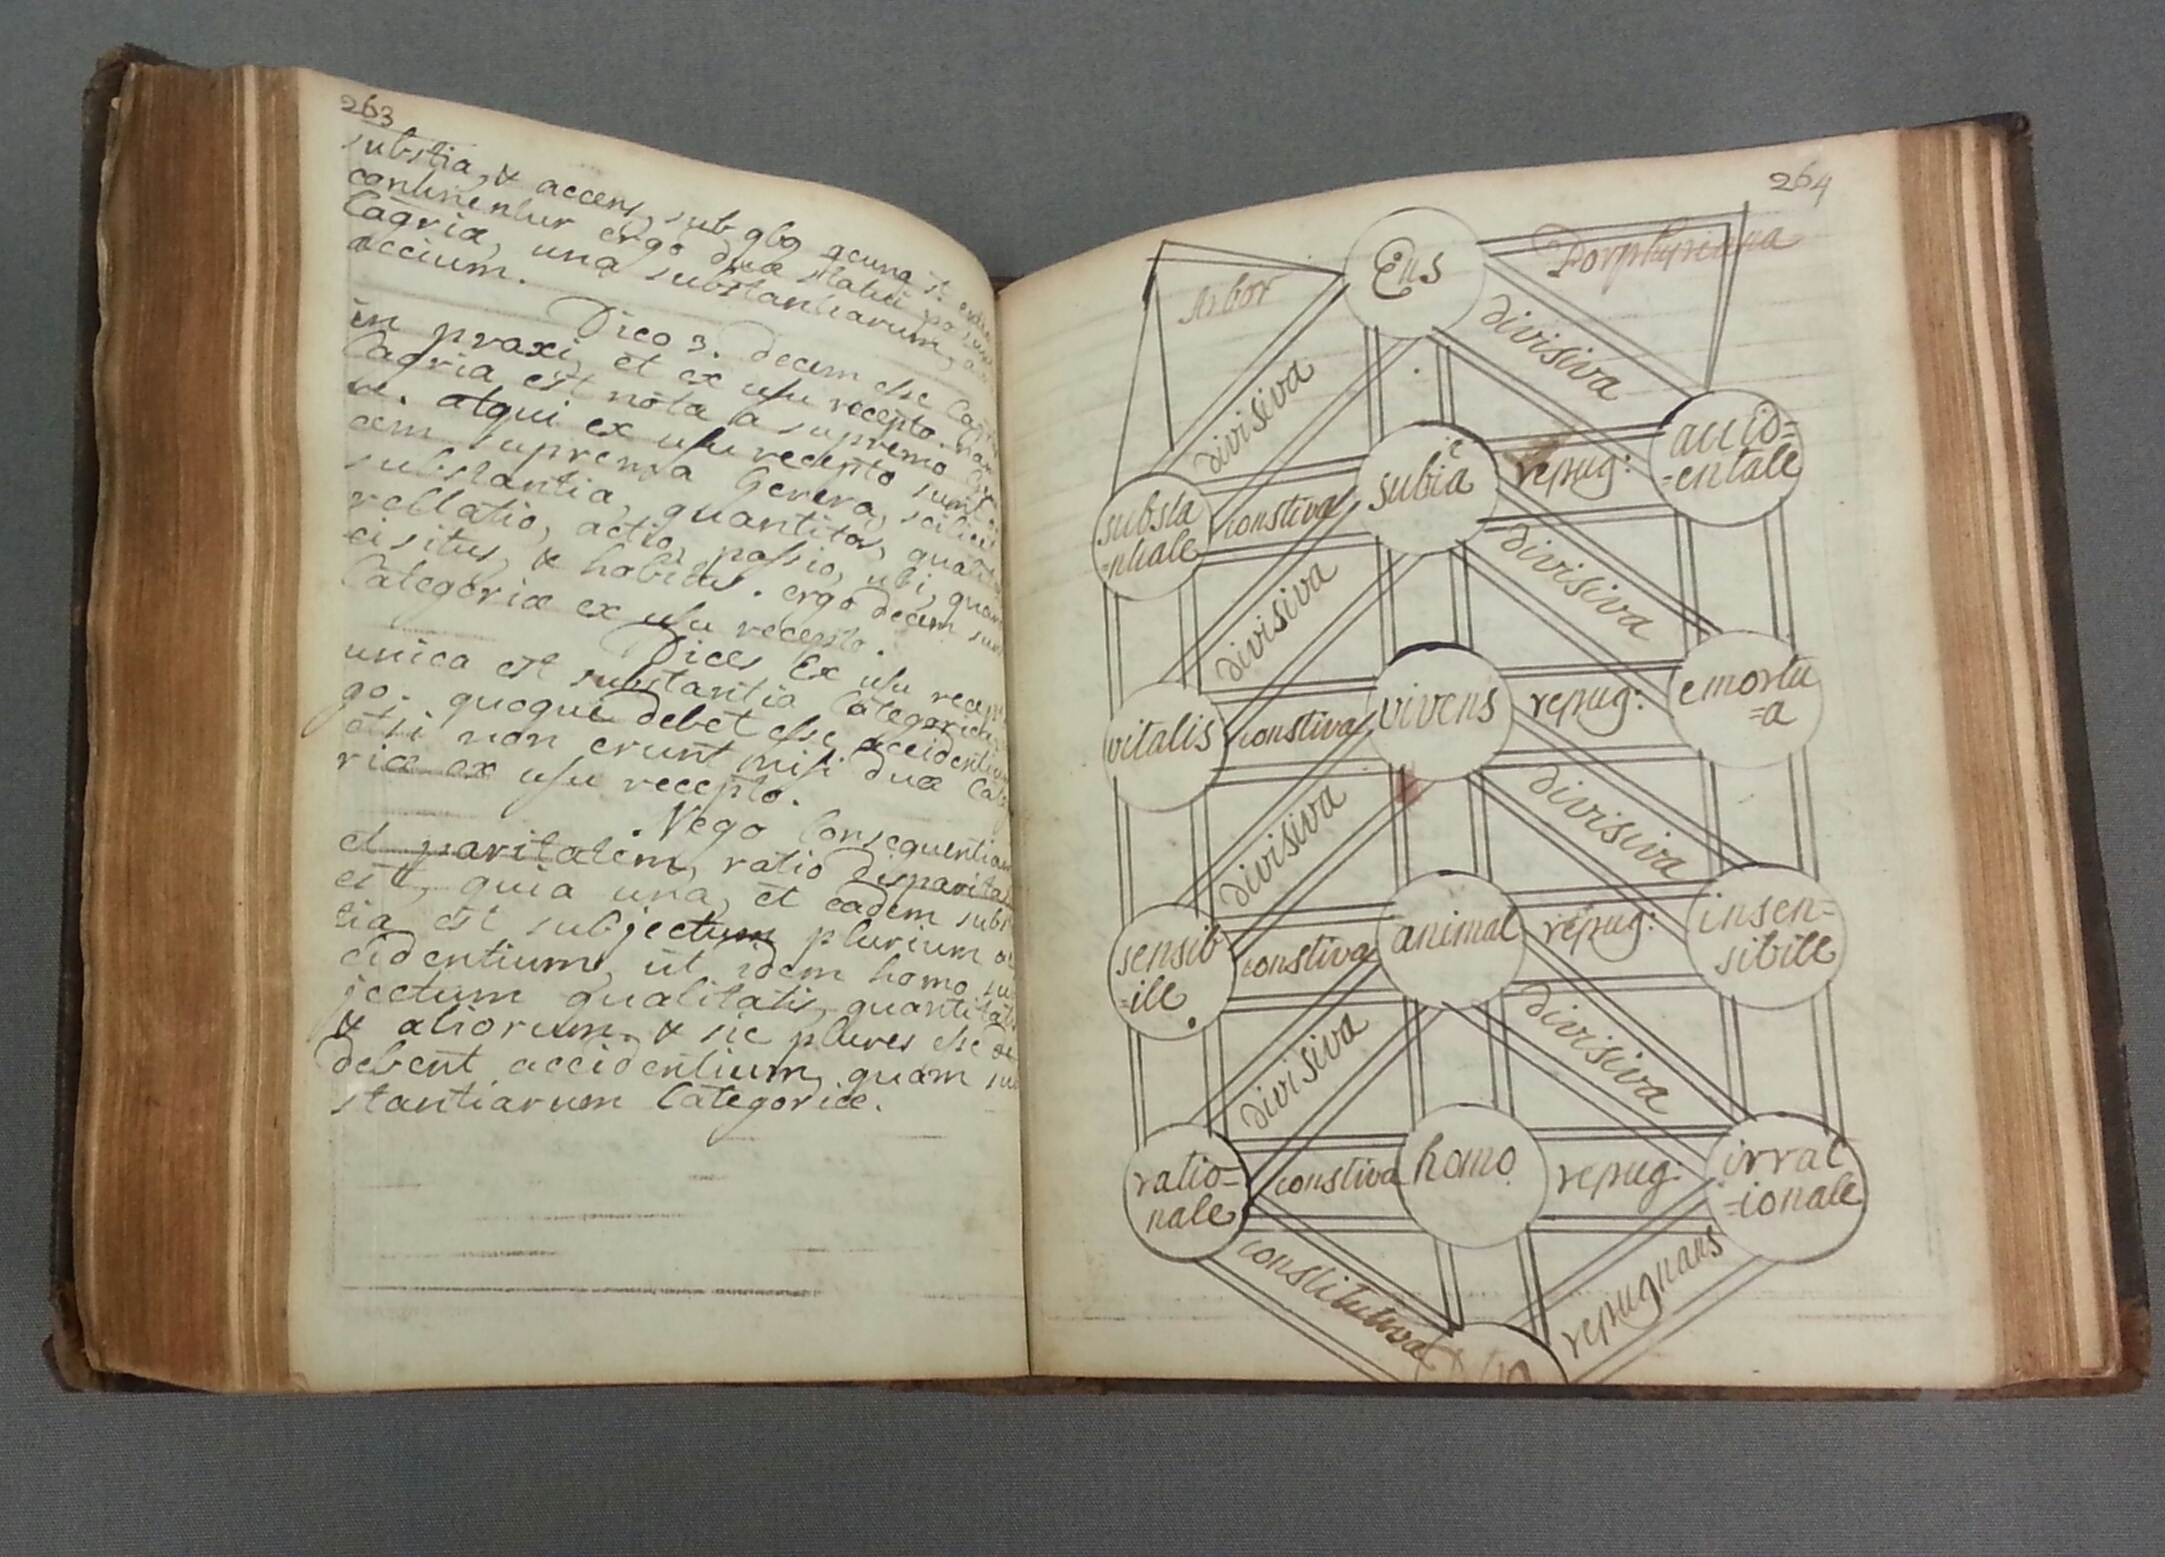 Maynooth Notebook